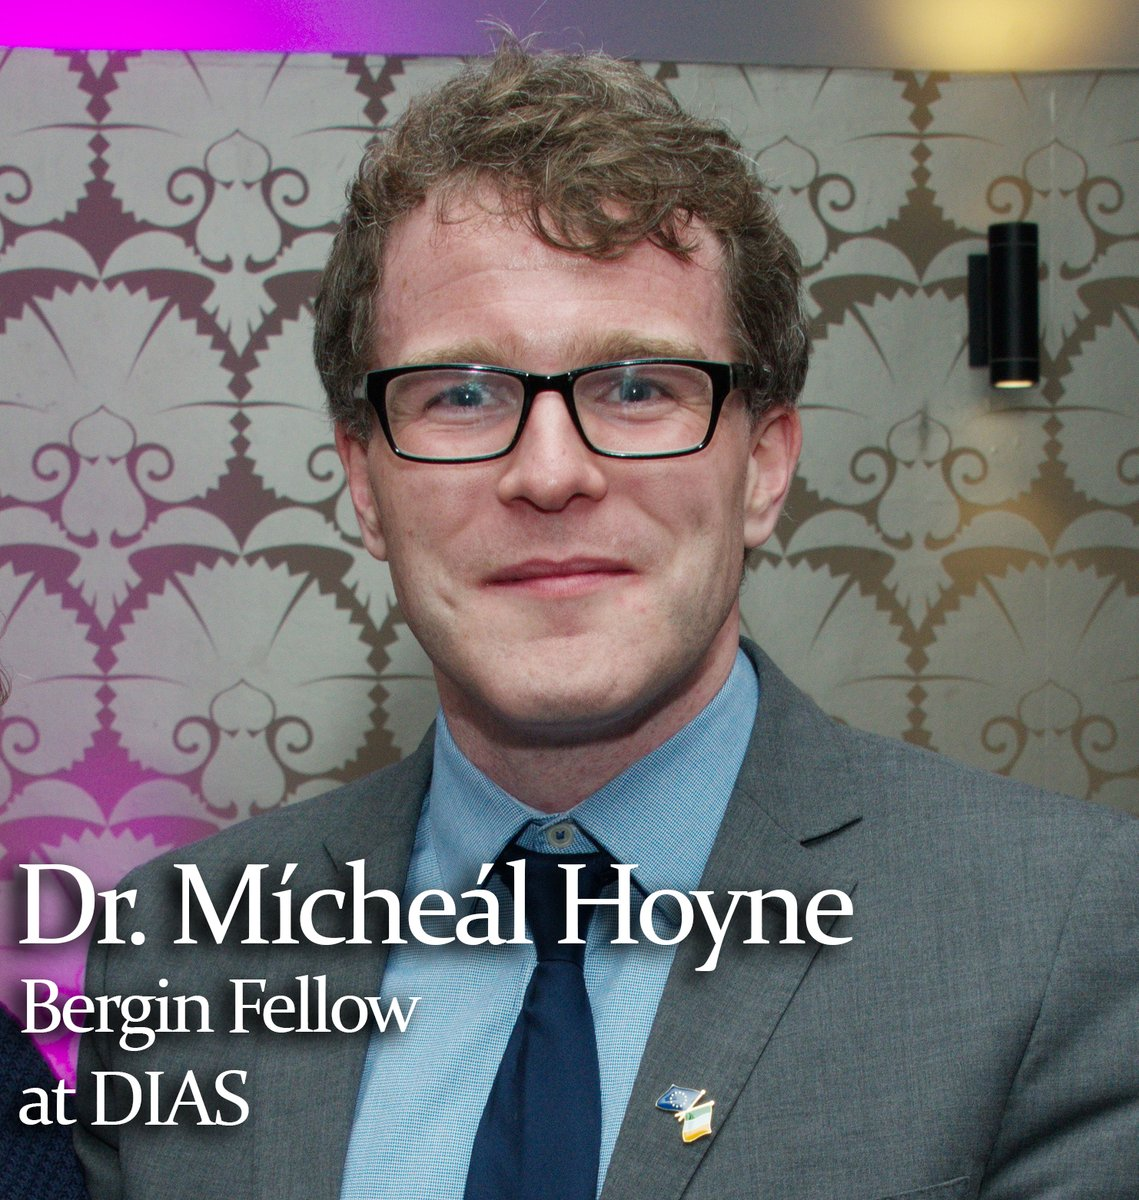 test Twitter Media - What does DIAS mean to you? We get to hear what Dr. Mícheál Hoyne, Bergin Fellow in the School of Celtic Studies at DIAS, has to say! https://t.co/bdNfcFoTLo